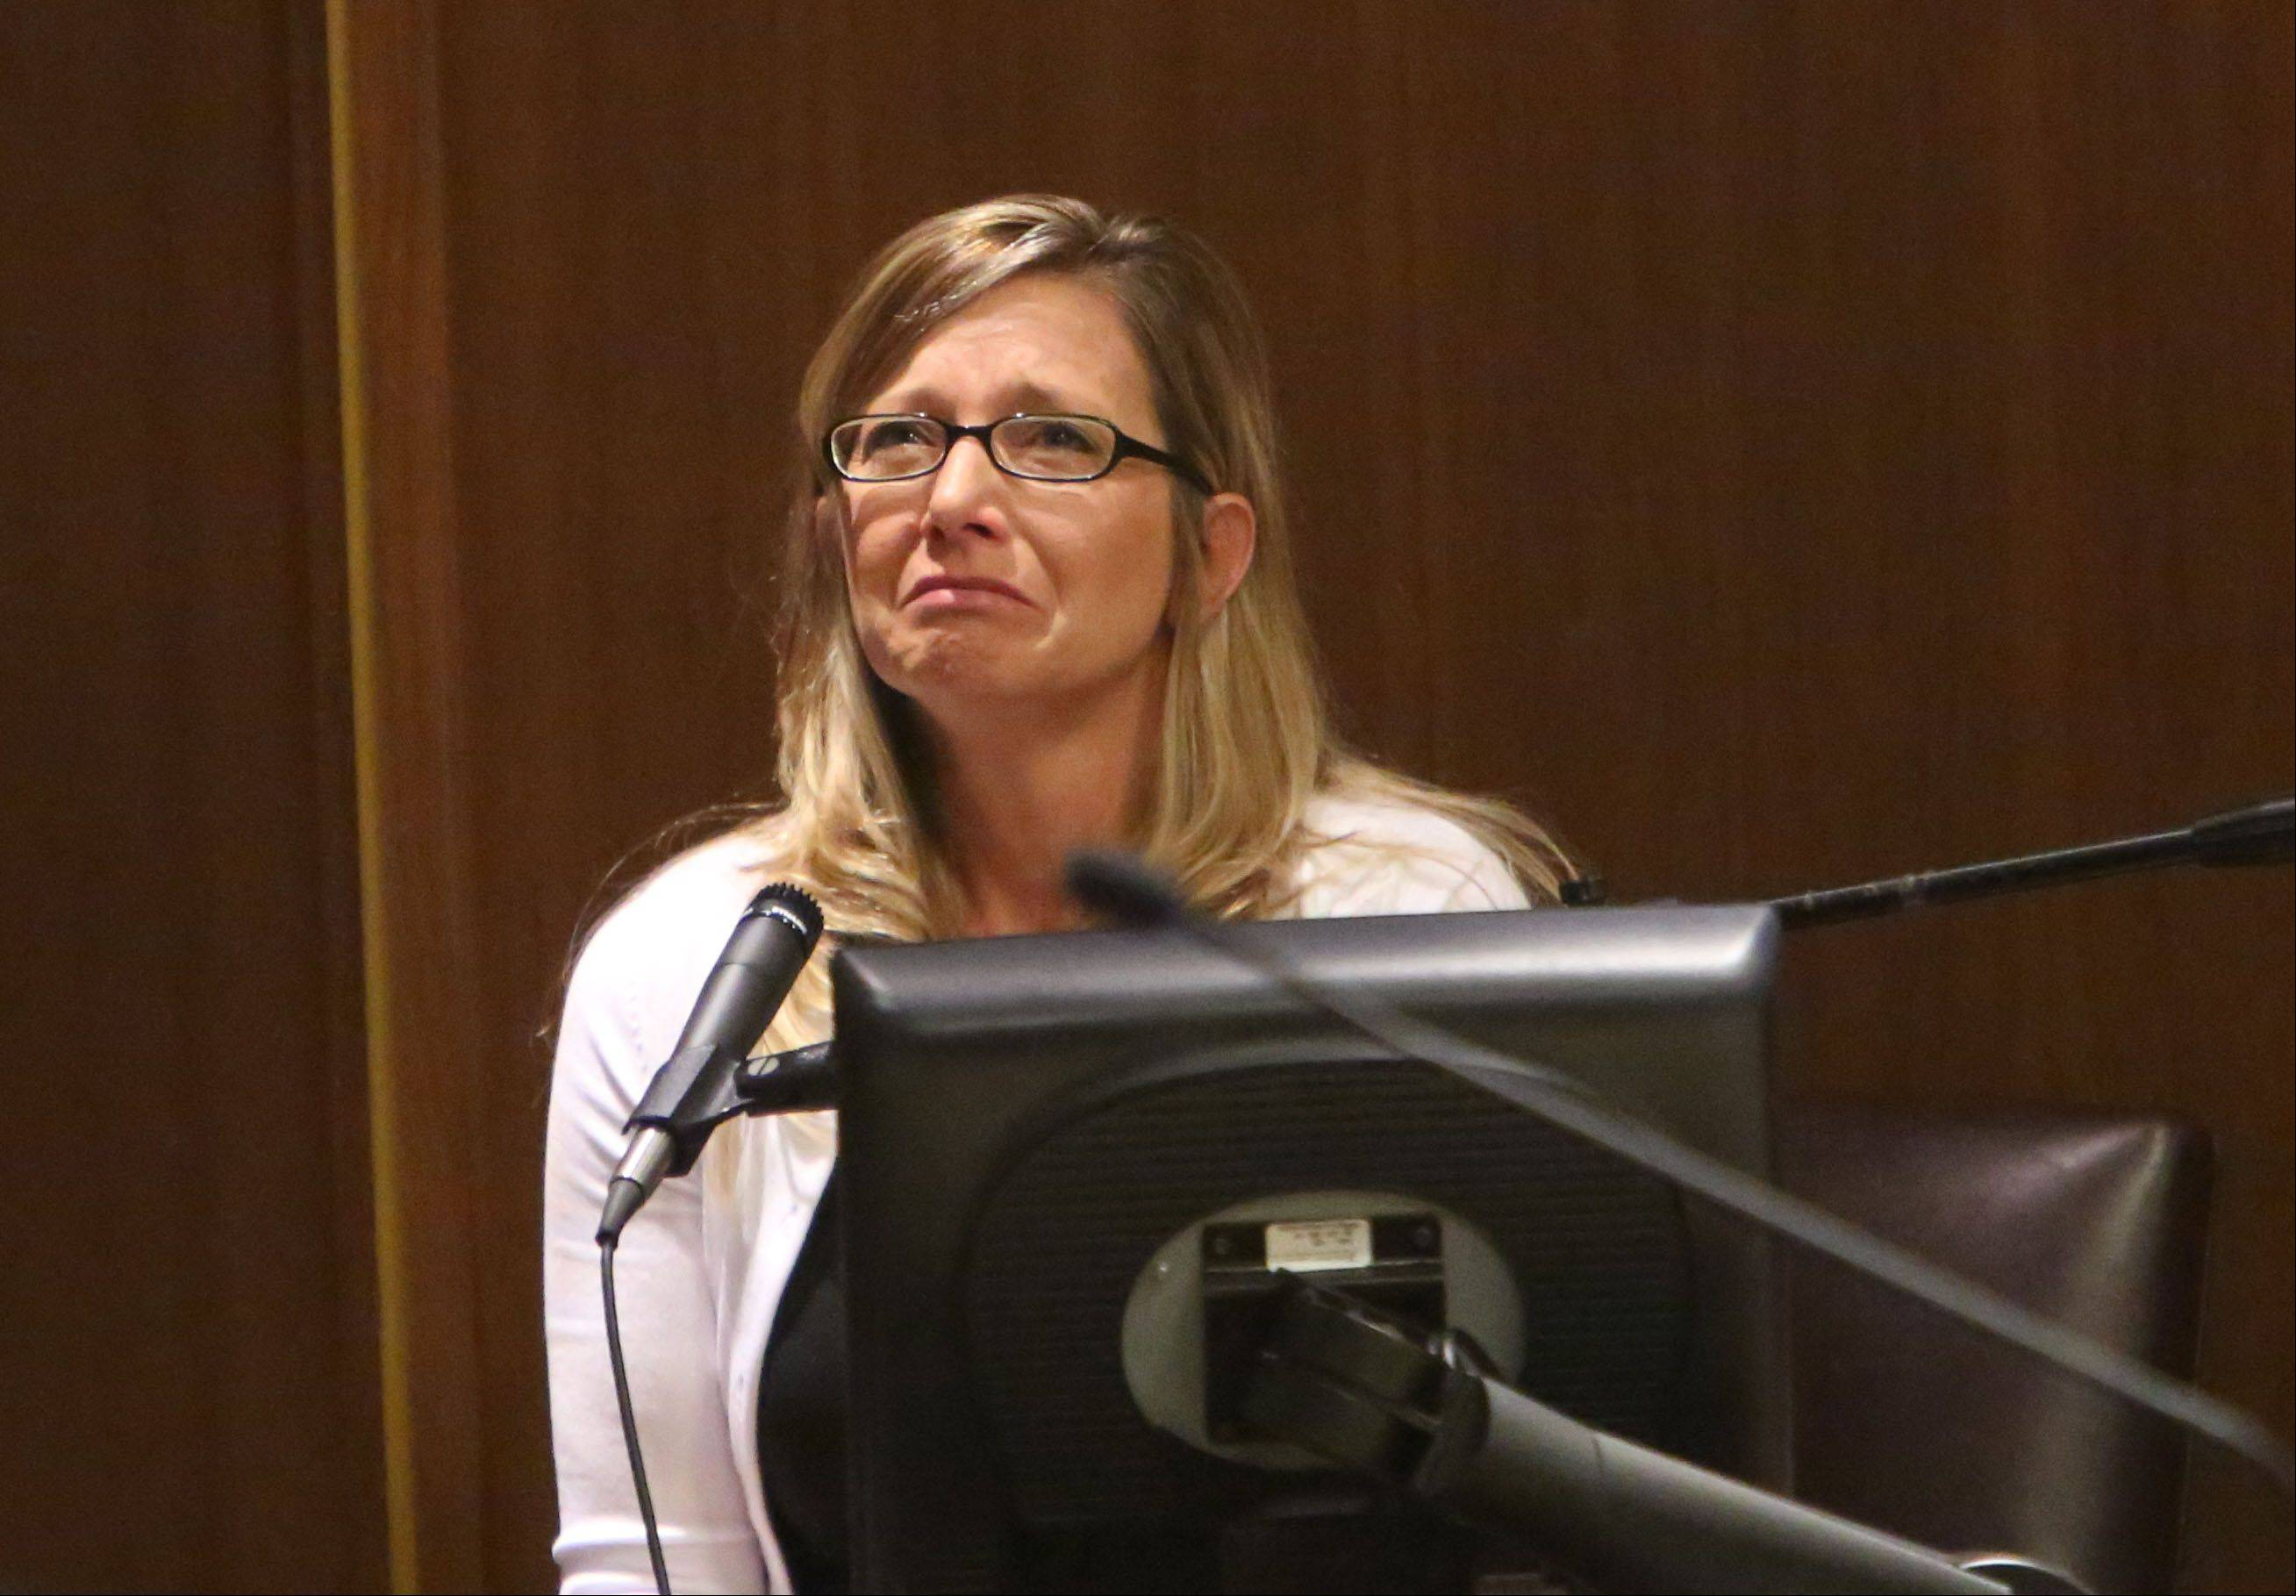 Renee Melbourn of Bartlett, longtime girlfriend of David Hatyina, cries during questioning at the sentencing hearing.